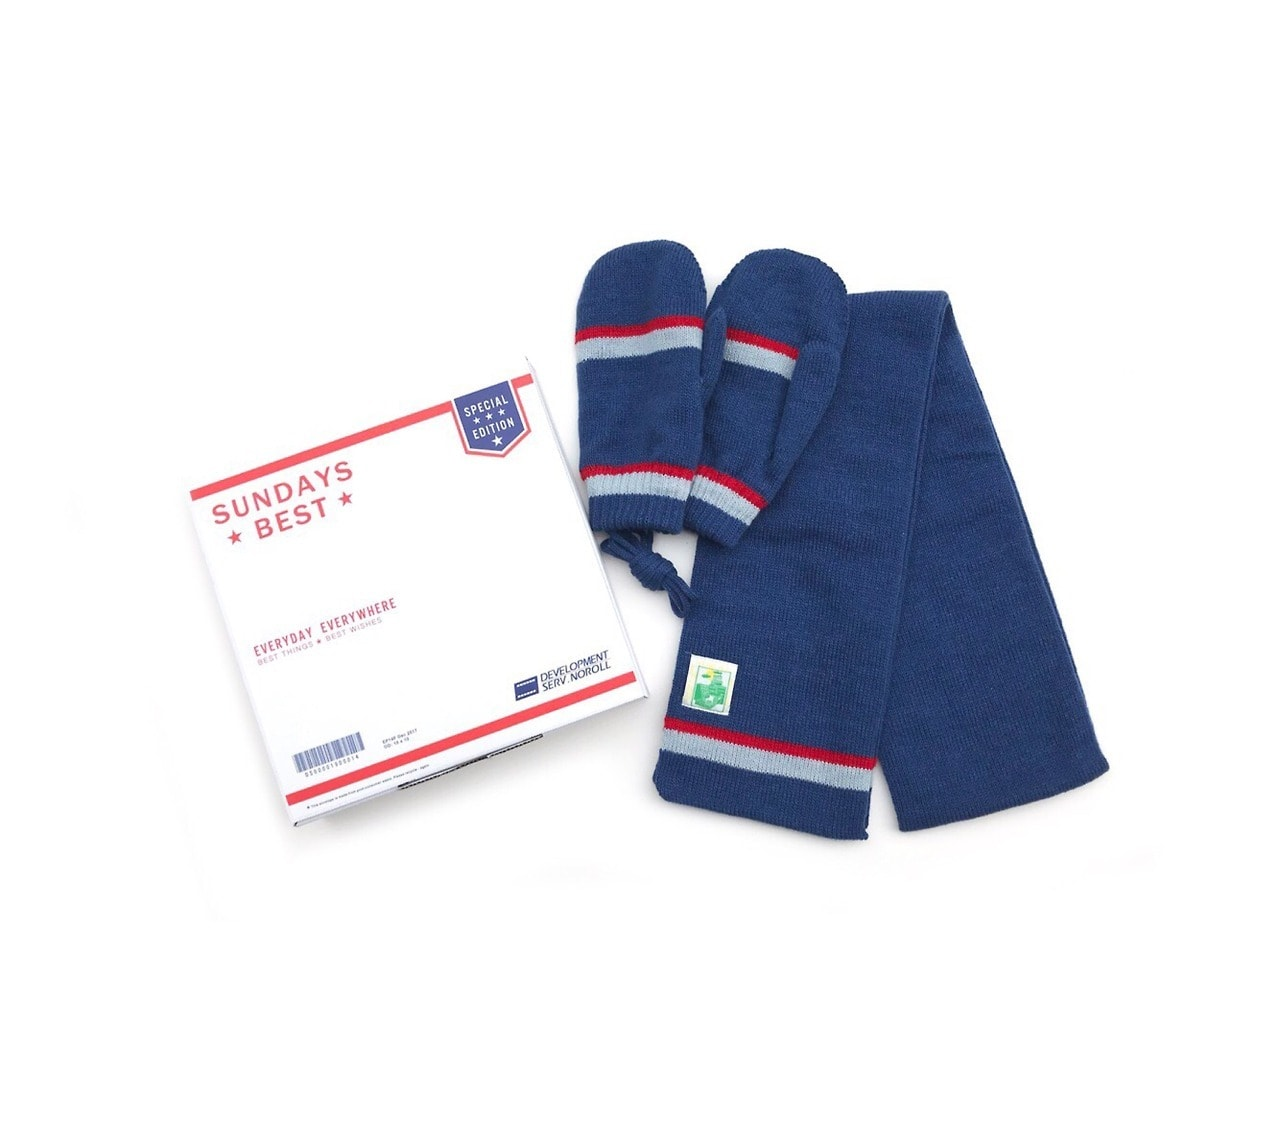 SUNDAYS BEST MITTEN & MUFFLER GIFT SET by NOROLL